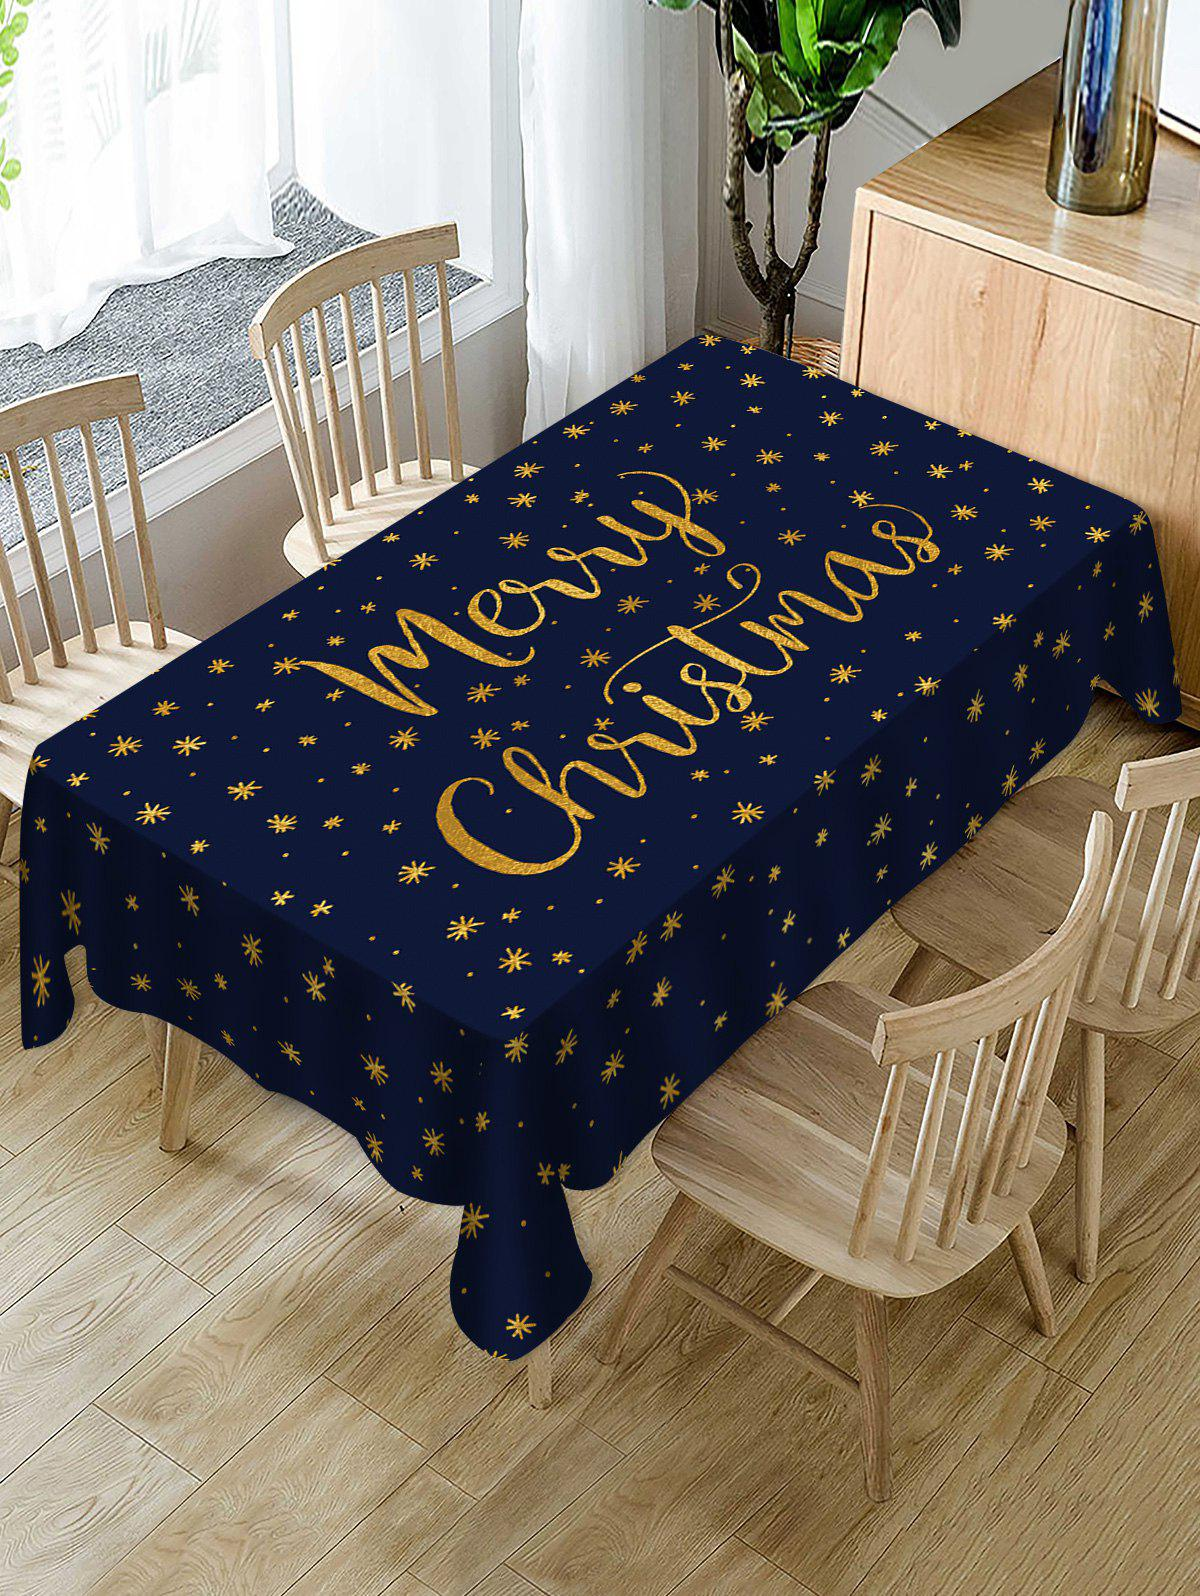 Fashion Merry Christmas Snowflake Fabric Waterproof Table Cloth